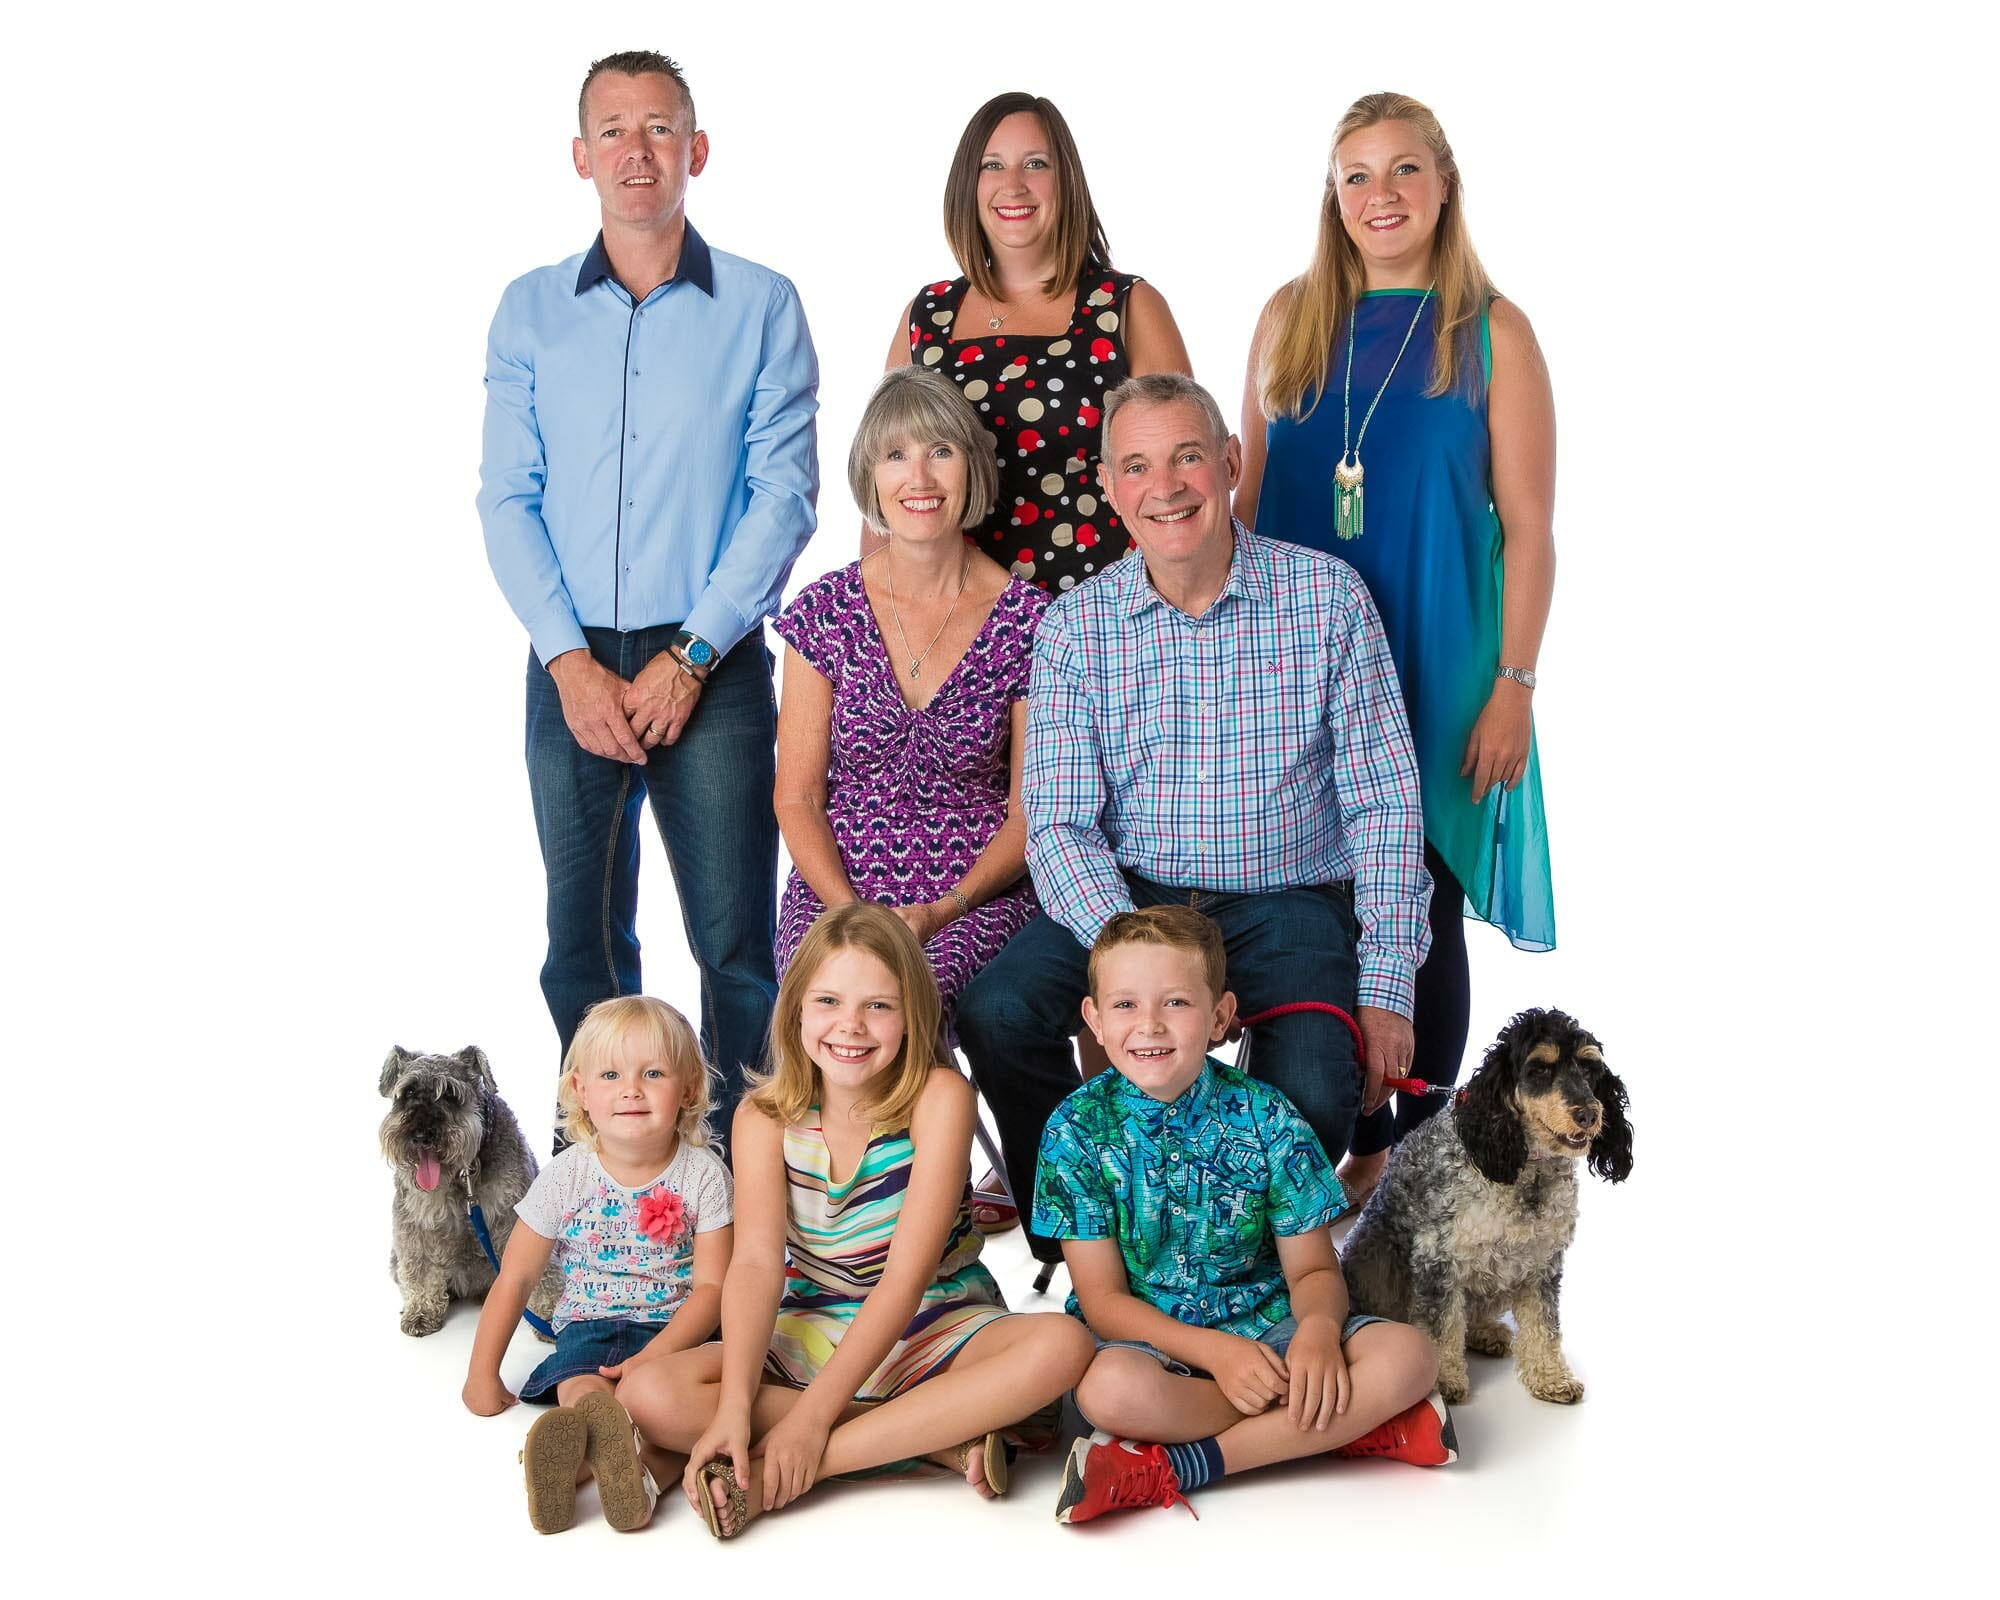 Group Family Portraits - Photography by Mark Hewitson Photography of Thame, Oxfordshire